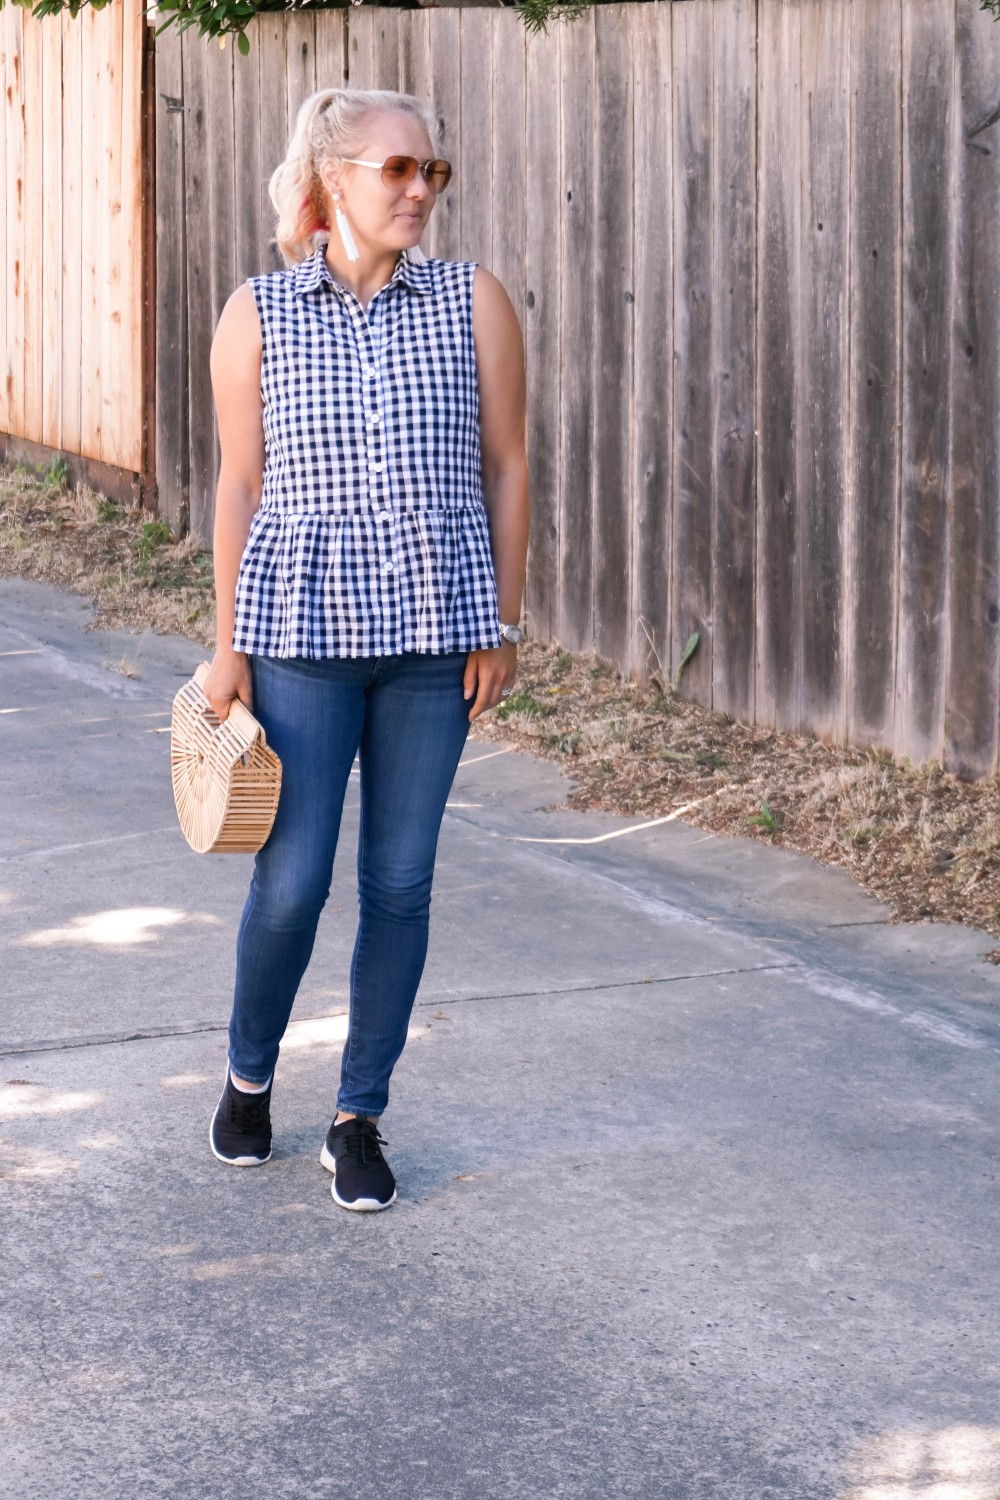 Blogger Off Duty-Daily Outfit Series-Have Need Want-Romwe Gingham Bow Top-Gingham Top-Summer Style-Mom Style-Stylish Moms-Outfit Inspiration 8